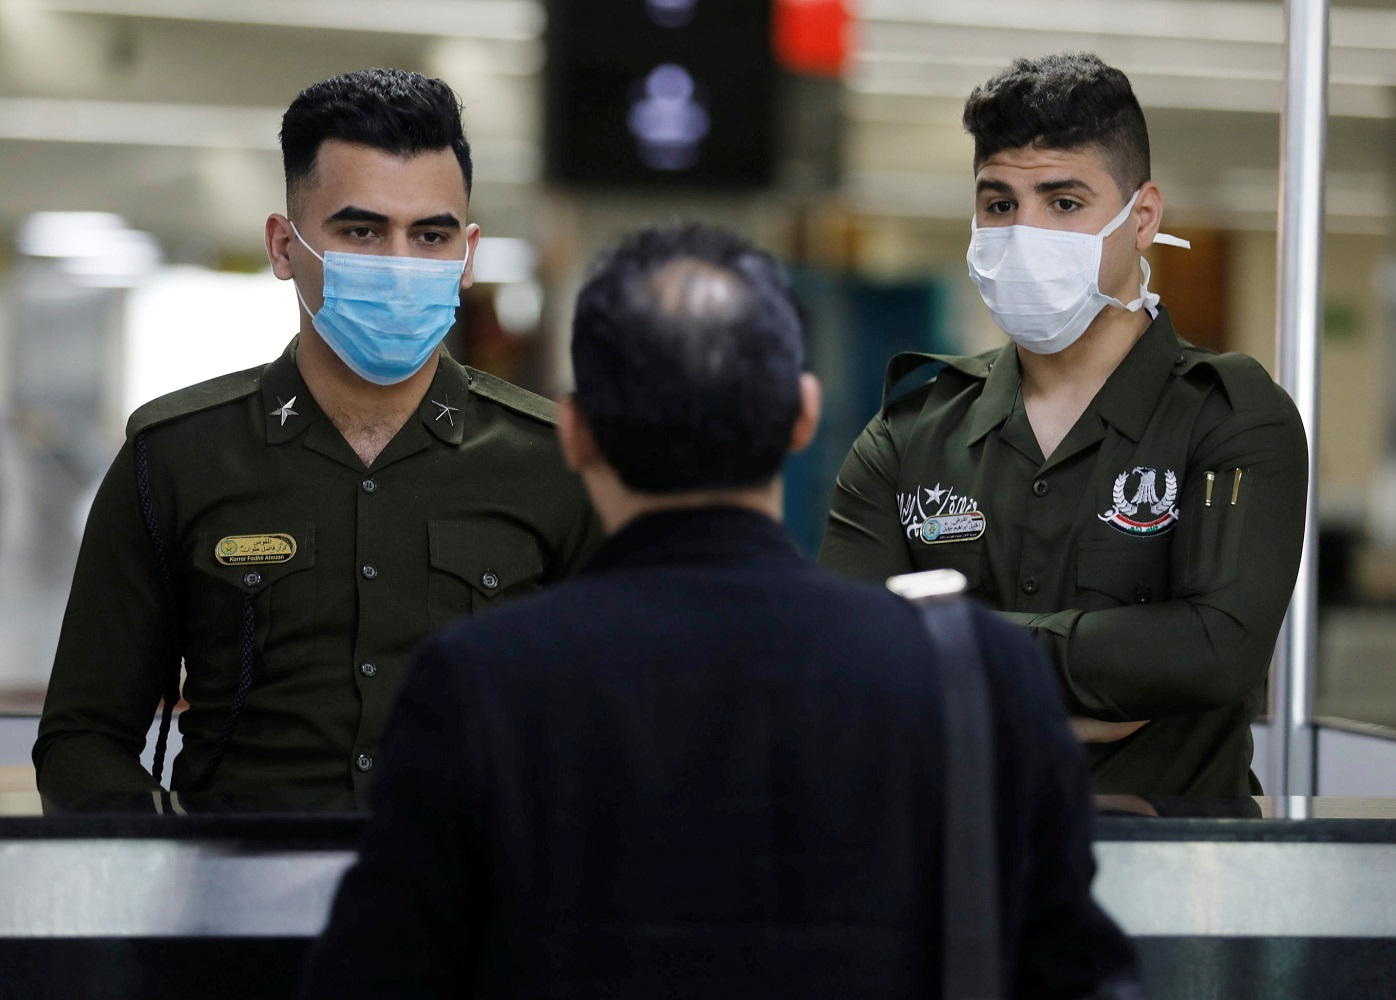 Iraqi police officers wearing protective face masks check a passenger's passport upon his arrival, following an outbreak of coronavirus, at Baghdad international Airport, in Baghdad, Iraq March 4, 2020. REUTERS/Khalid al-Mousily